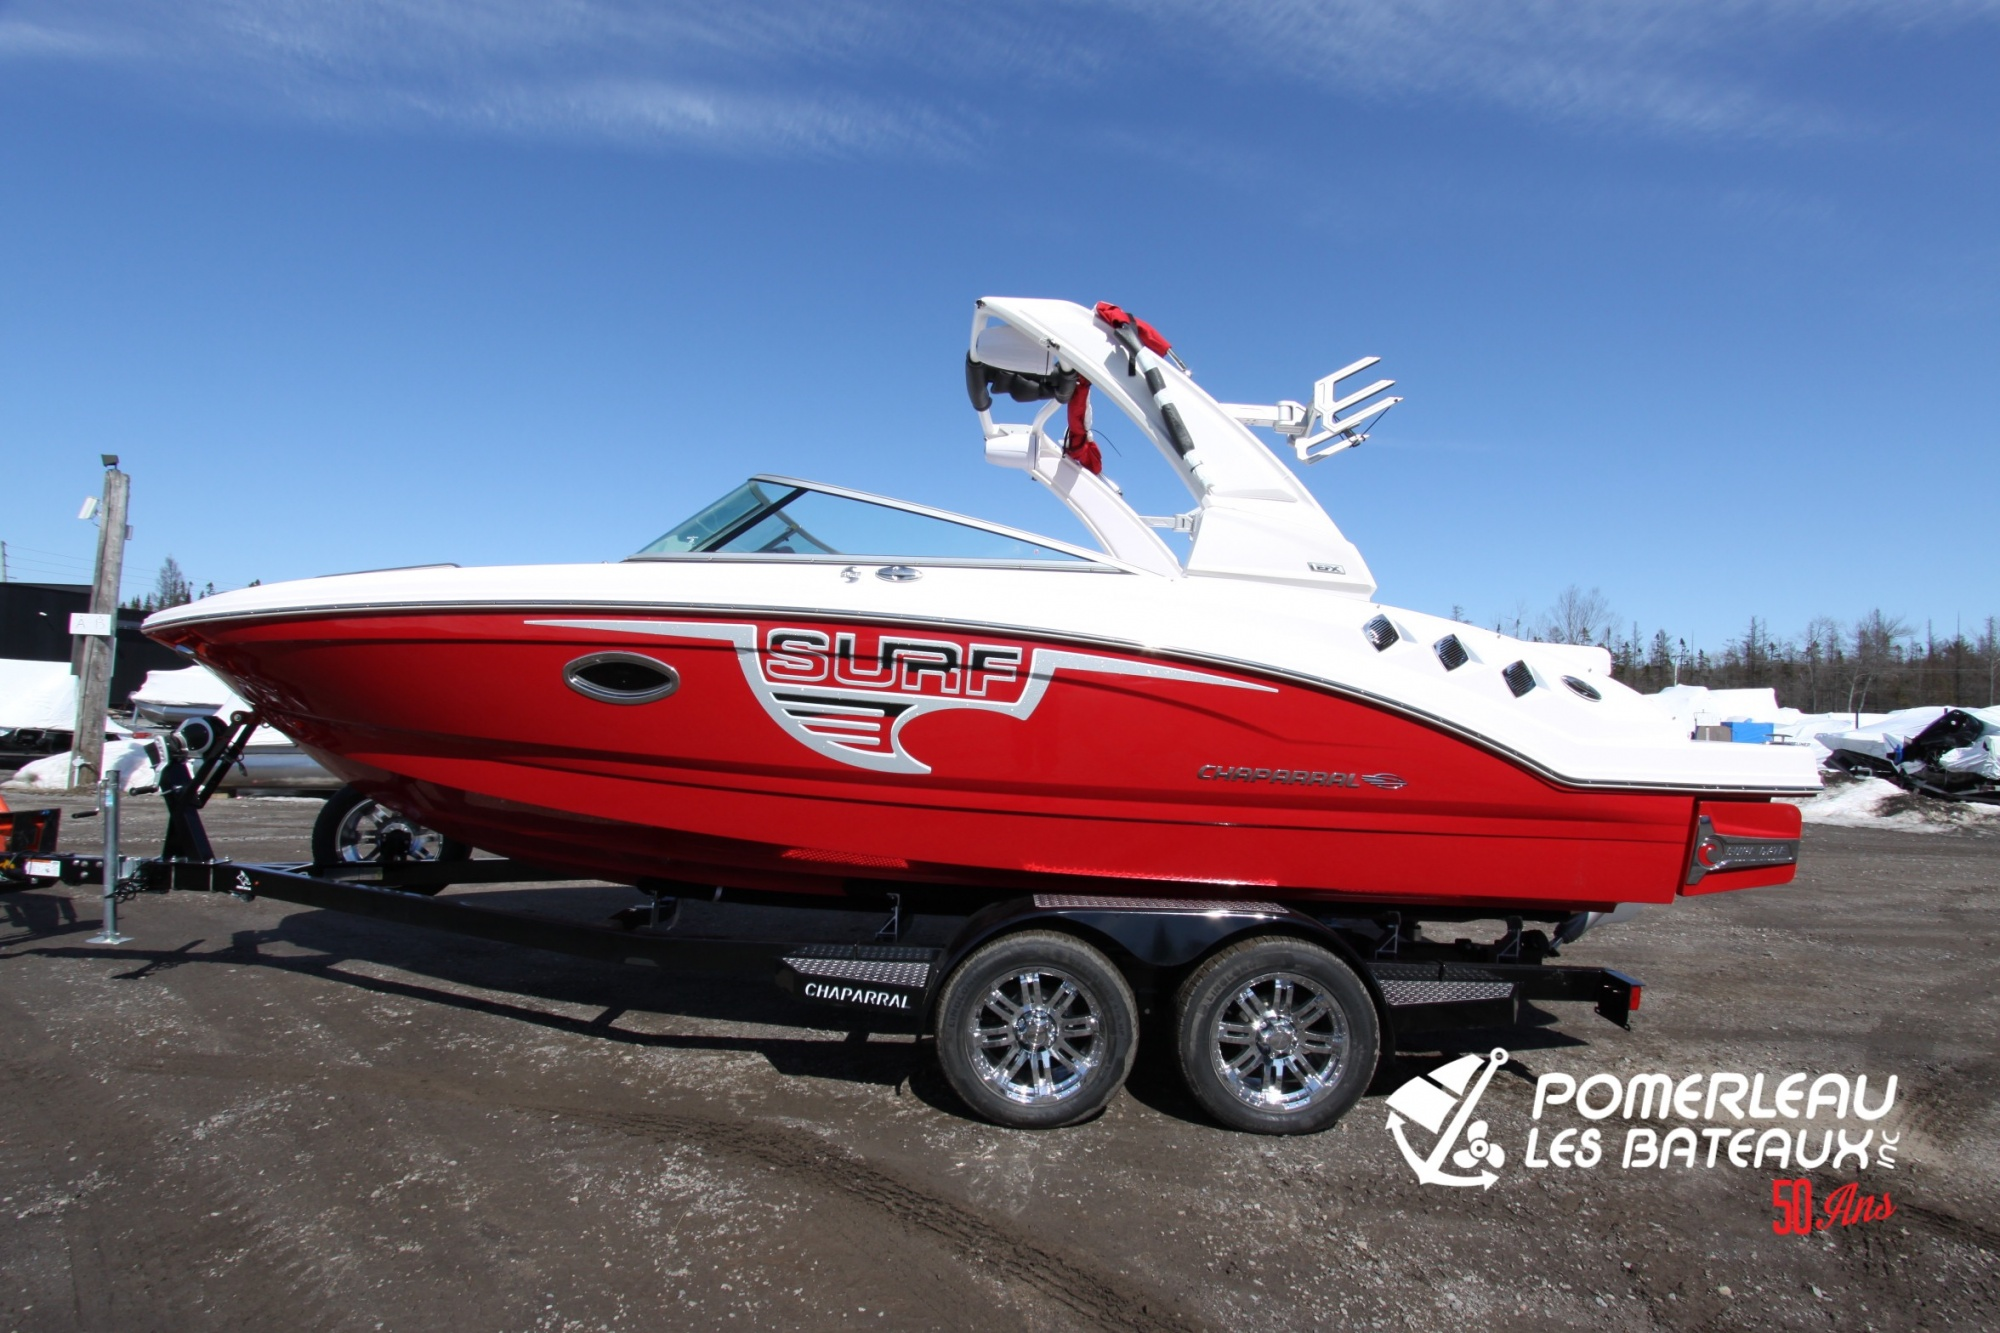 Chaparral 24 Surf - IMG_5009